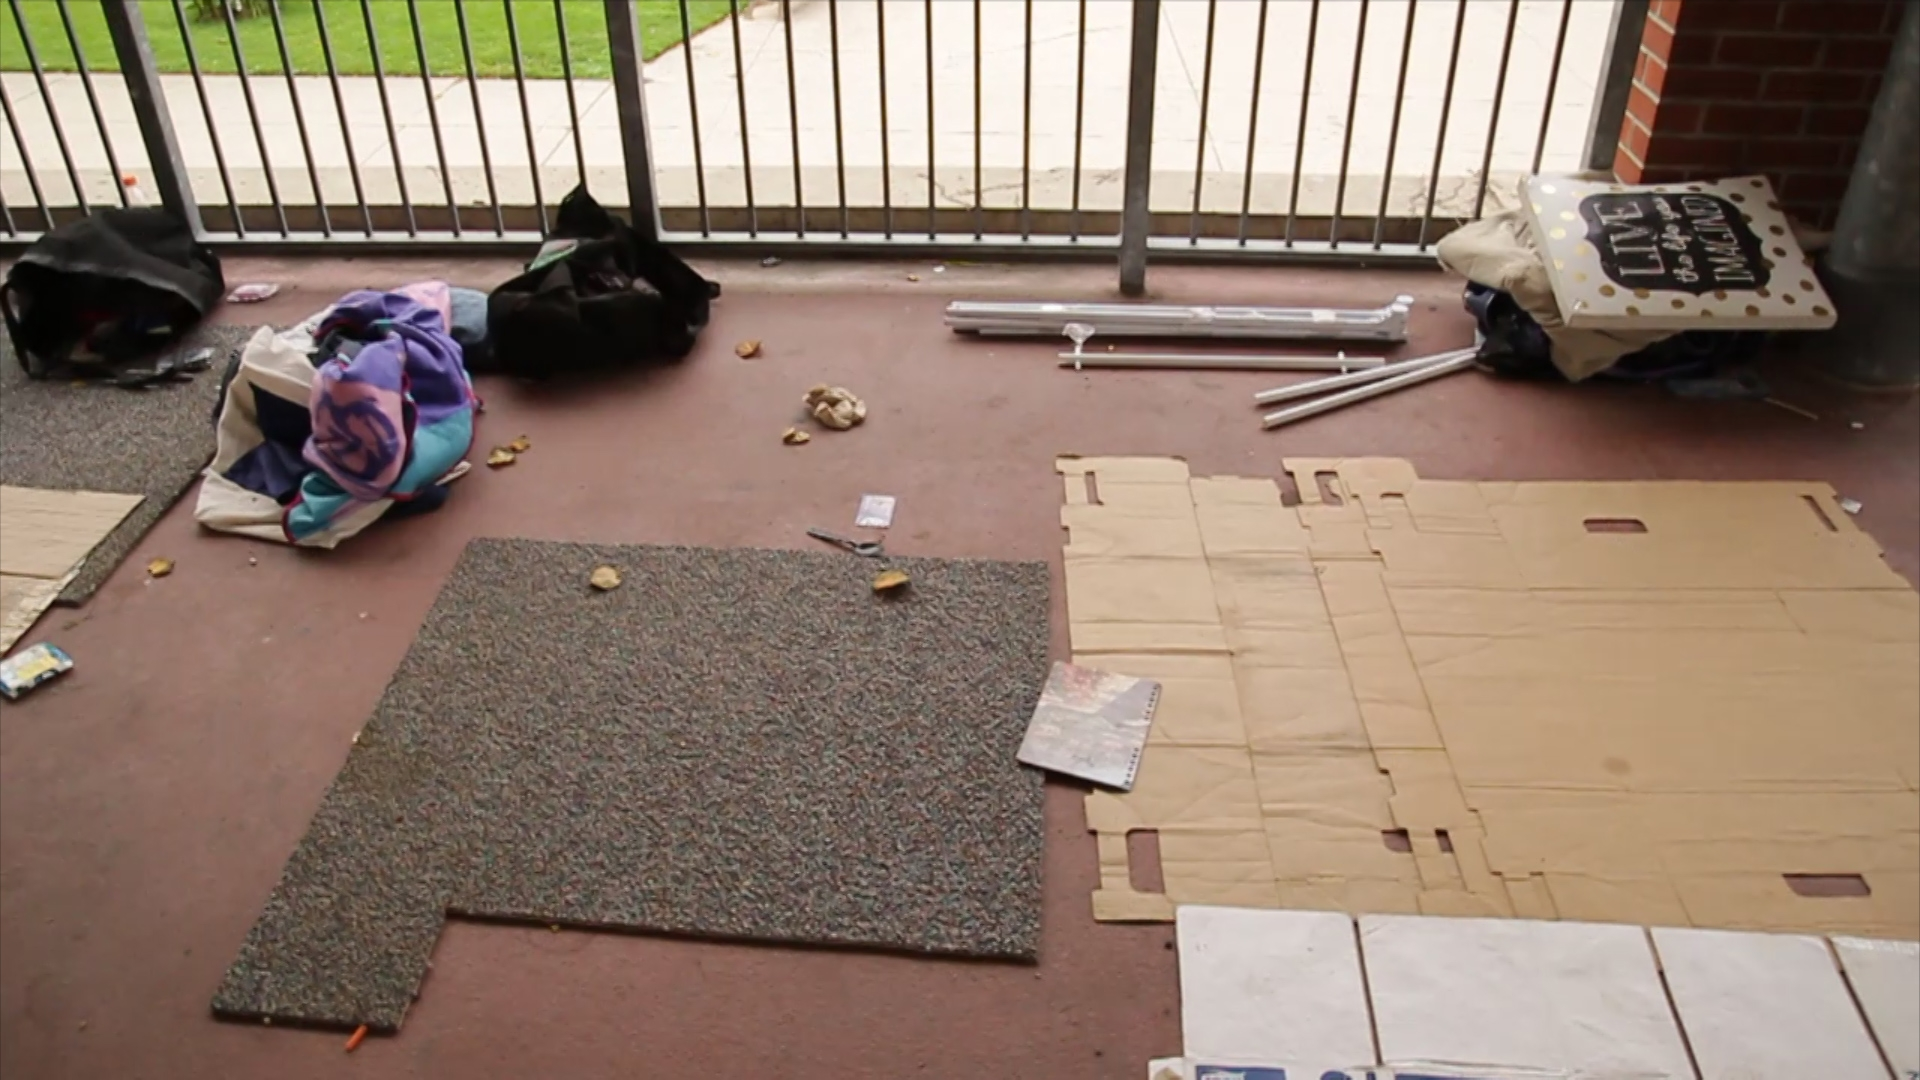 Bits of carpet and cardboard left behind by the occupants of the patio overlooking the park.